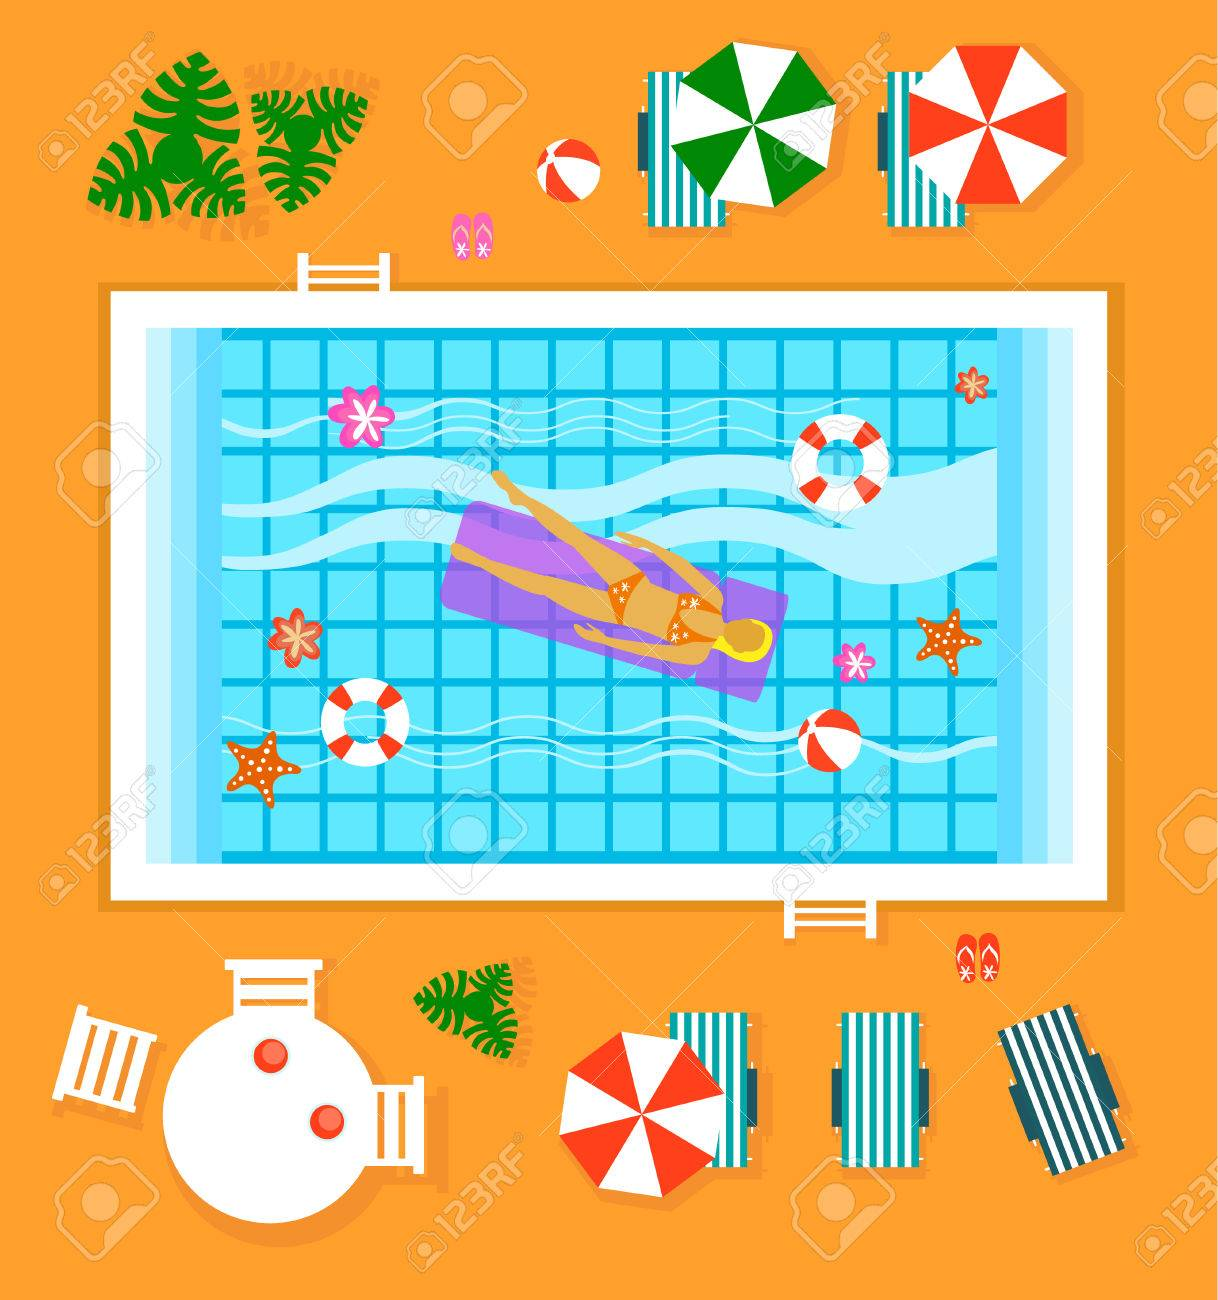 Happy People Sunny Pool Hotel Summer Vacation Flat Design Concept Template Vector Illustration Stock